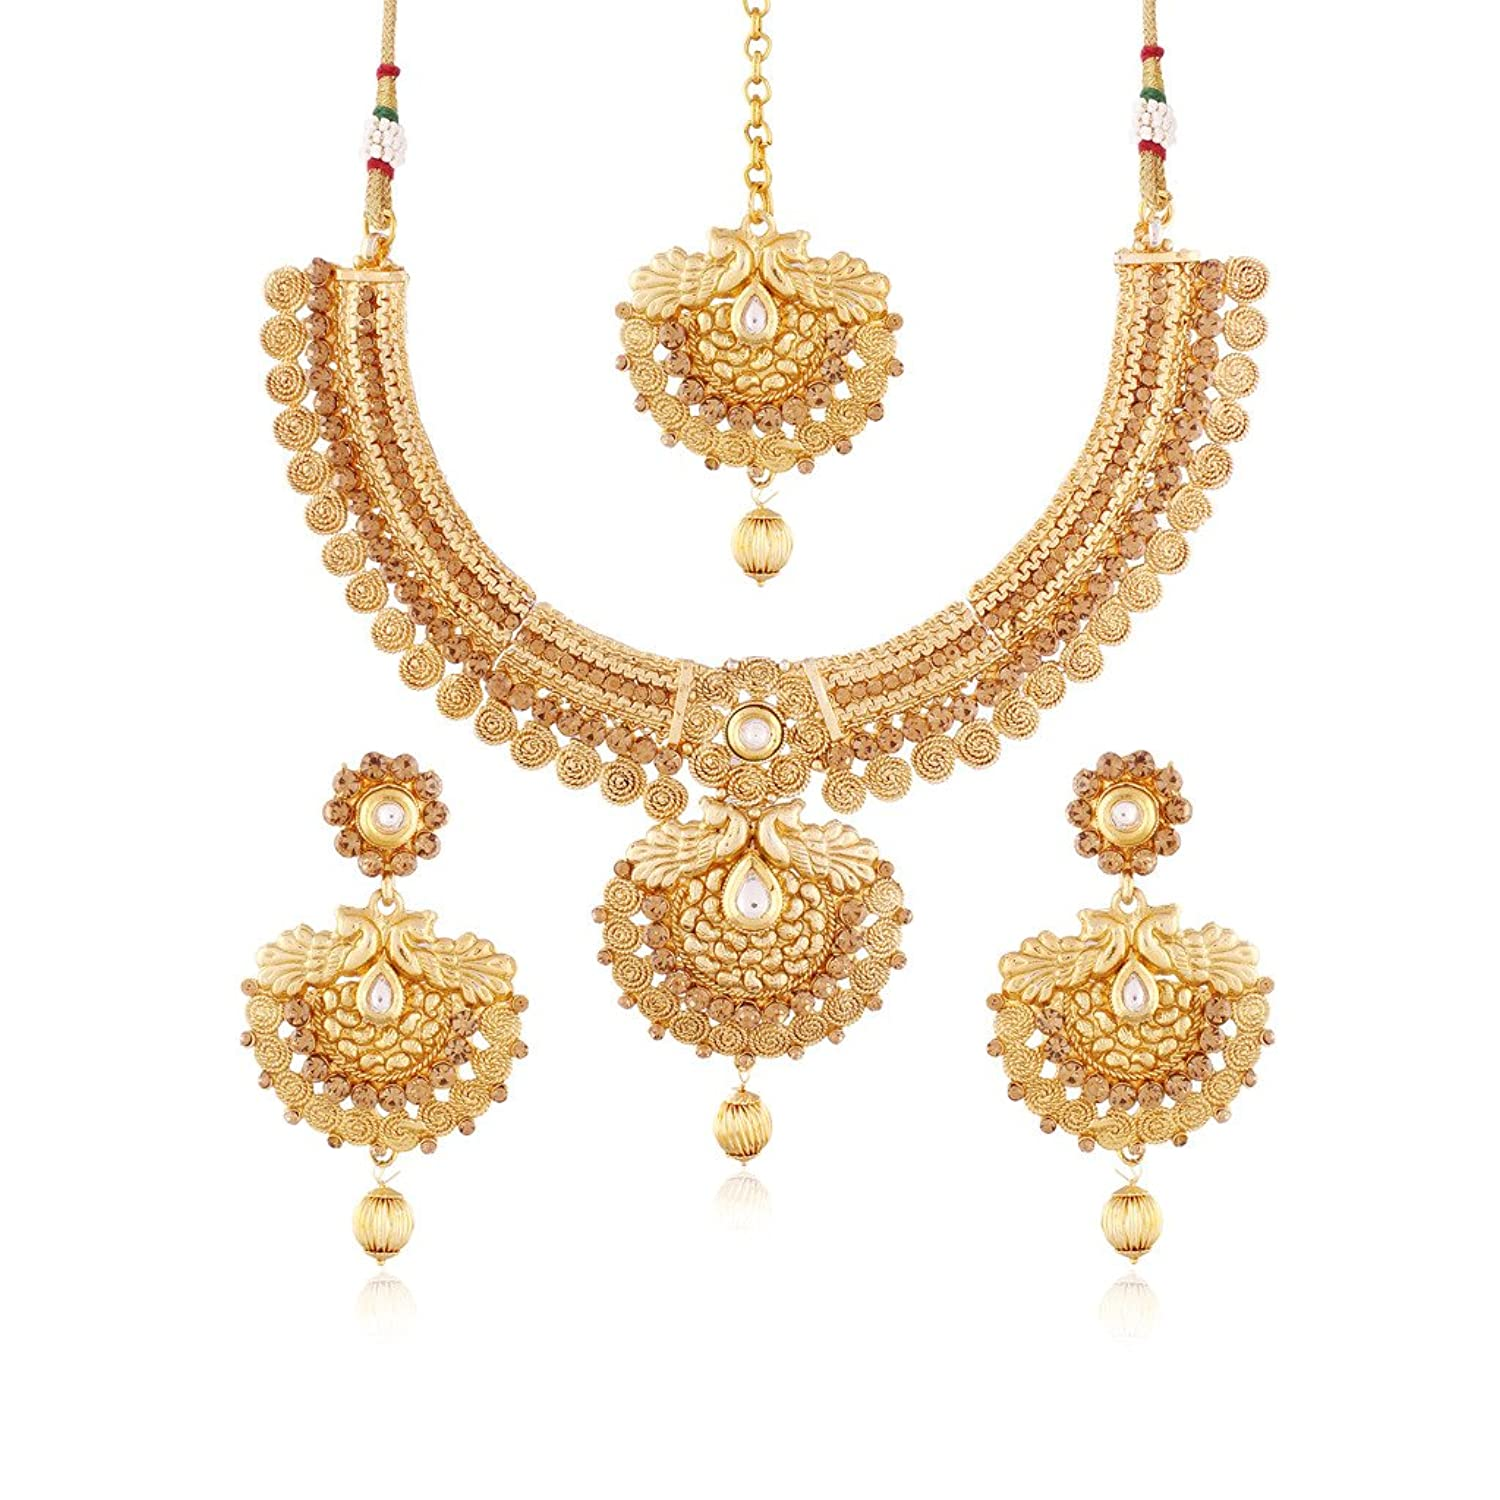 Gold necklace designs with price in rupees jewelry gallery - Buy I Jewels Gold Plated Traditional Necklace Set With Earrings Maang Tikka For Women Ms115 Online At Low Prices In India Amazon Jewellery Store